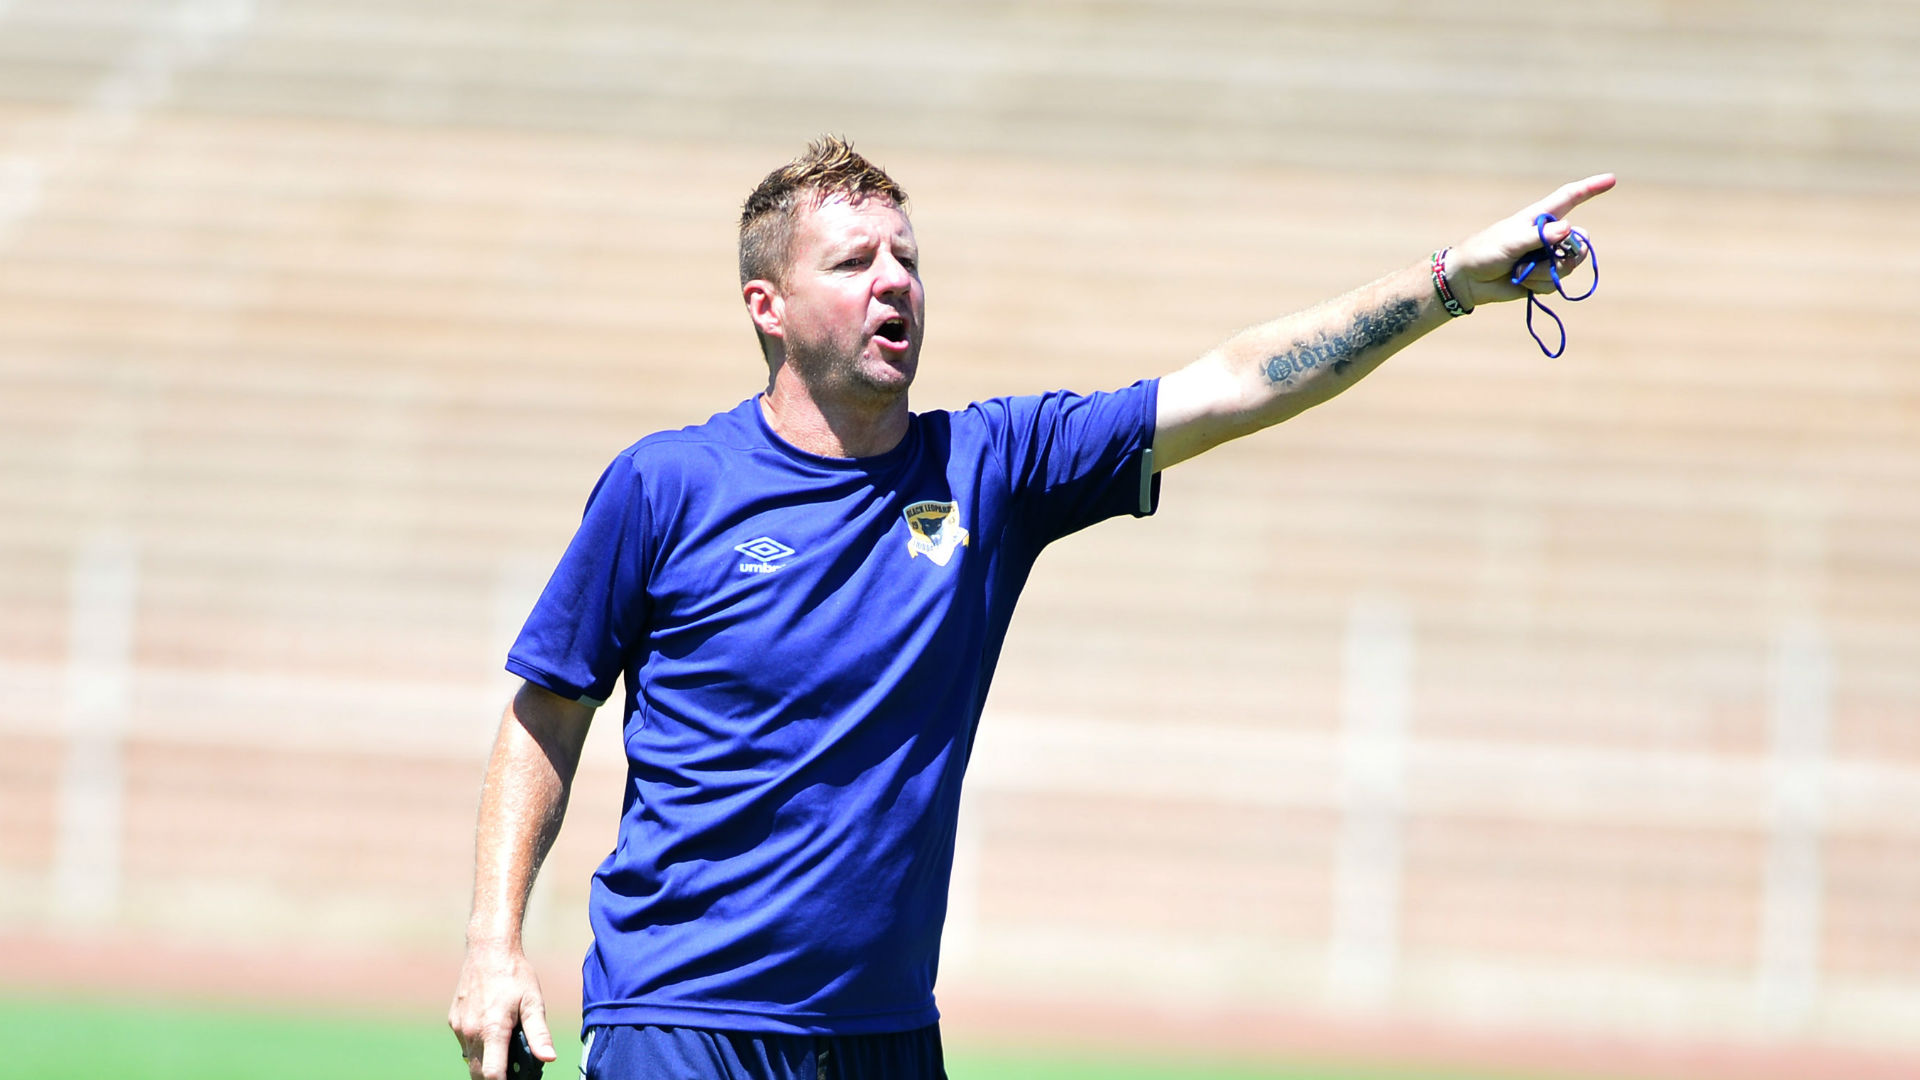 Kerr reveals he wants to stay at Baroka FC despite challenging circumstances